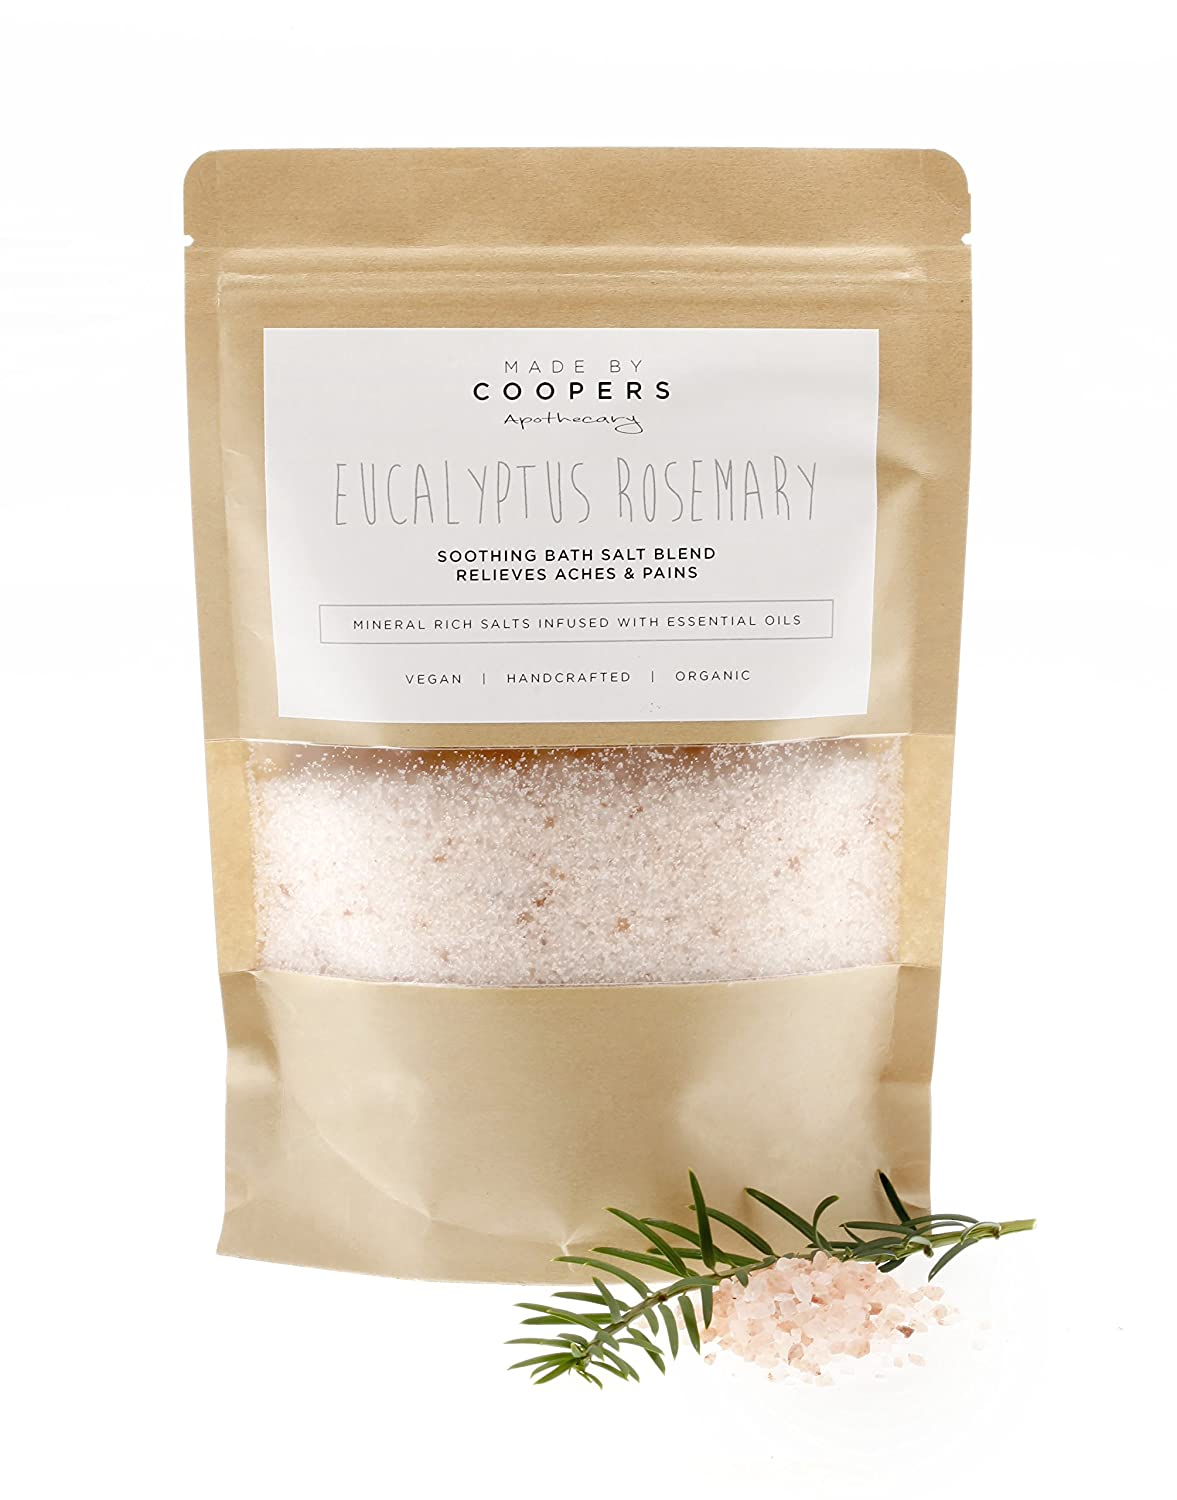 Eucalyptus Rosemary Soothing Bath Salt Blend with Essential Oils to Relieve Muscular Aches and Pains by Made By Coopers - 400g Bag.